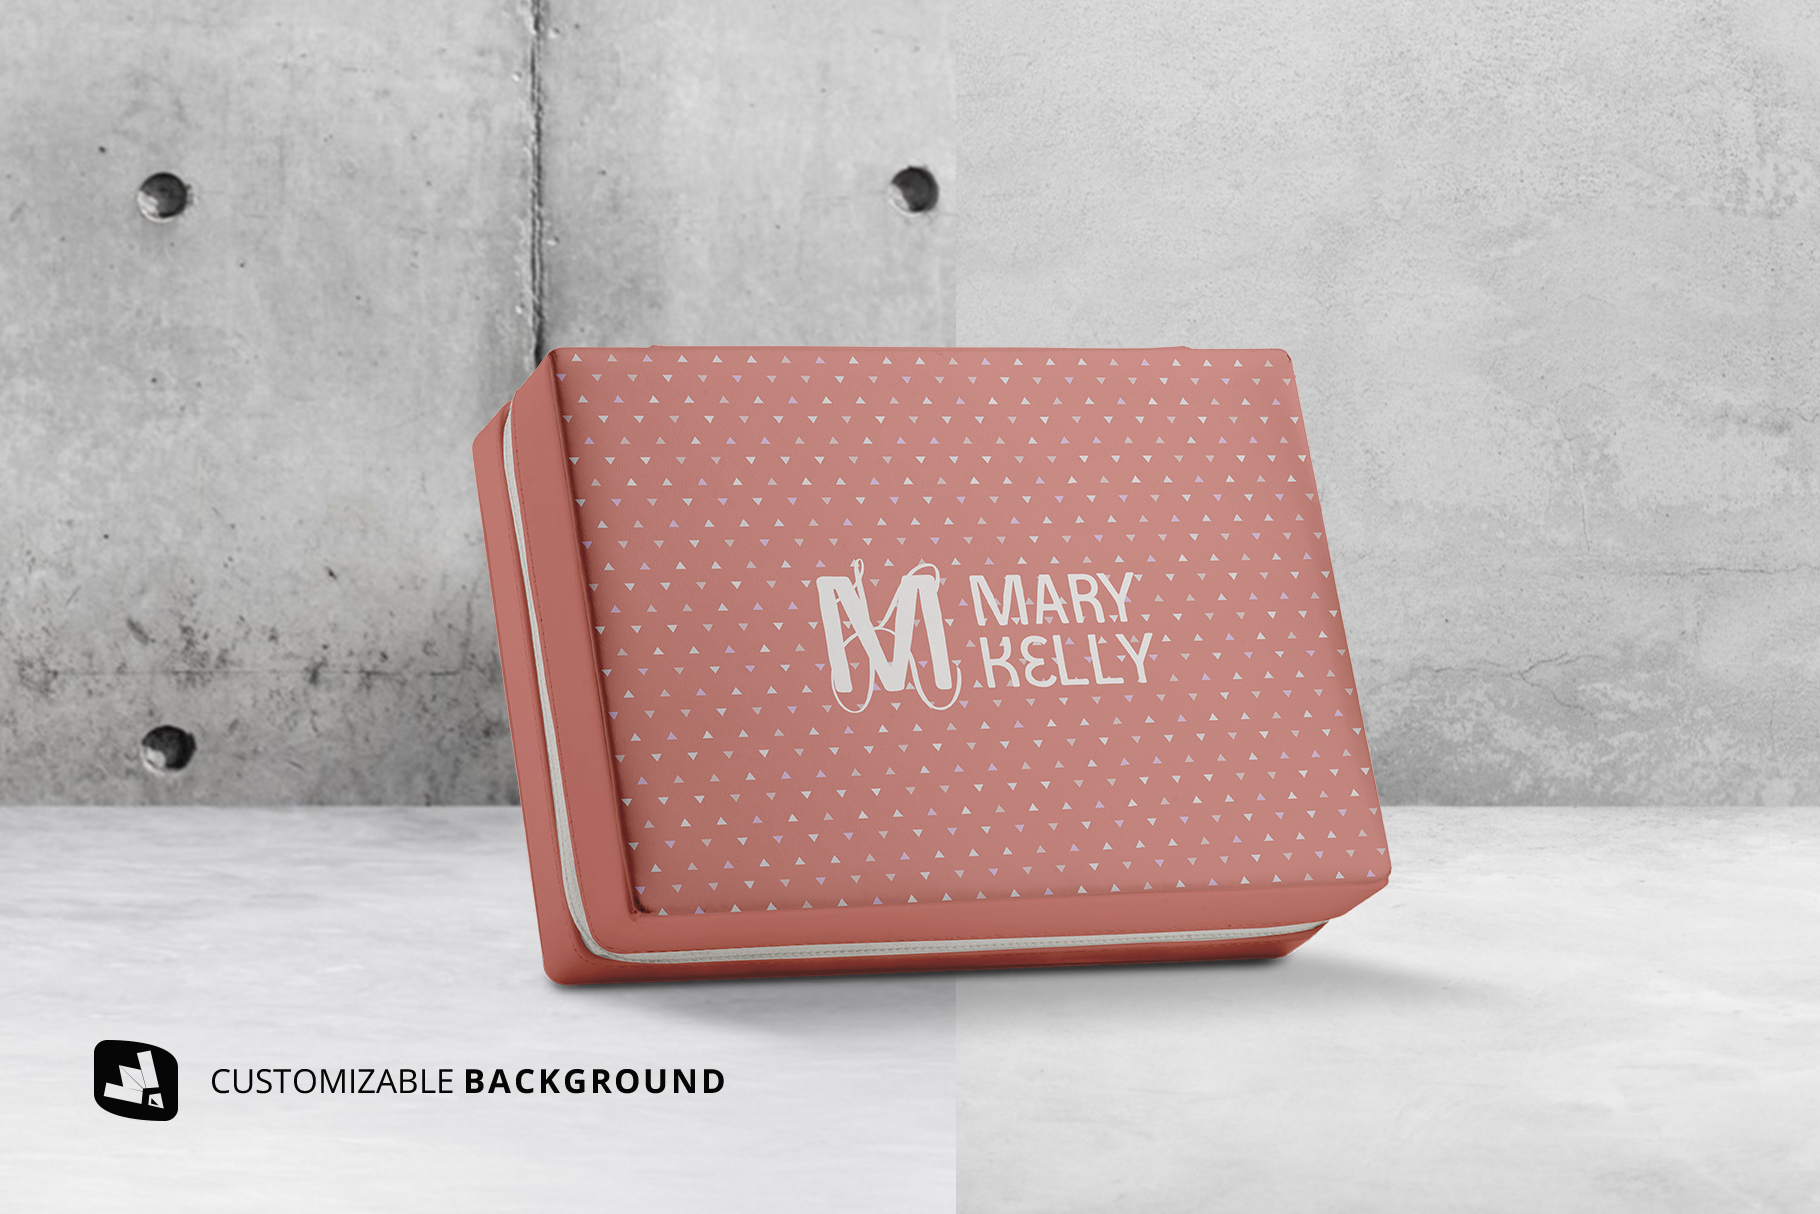 background options of the luxury apparel packaging mockup